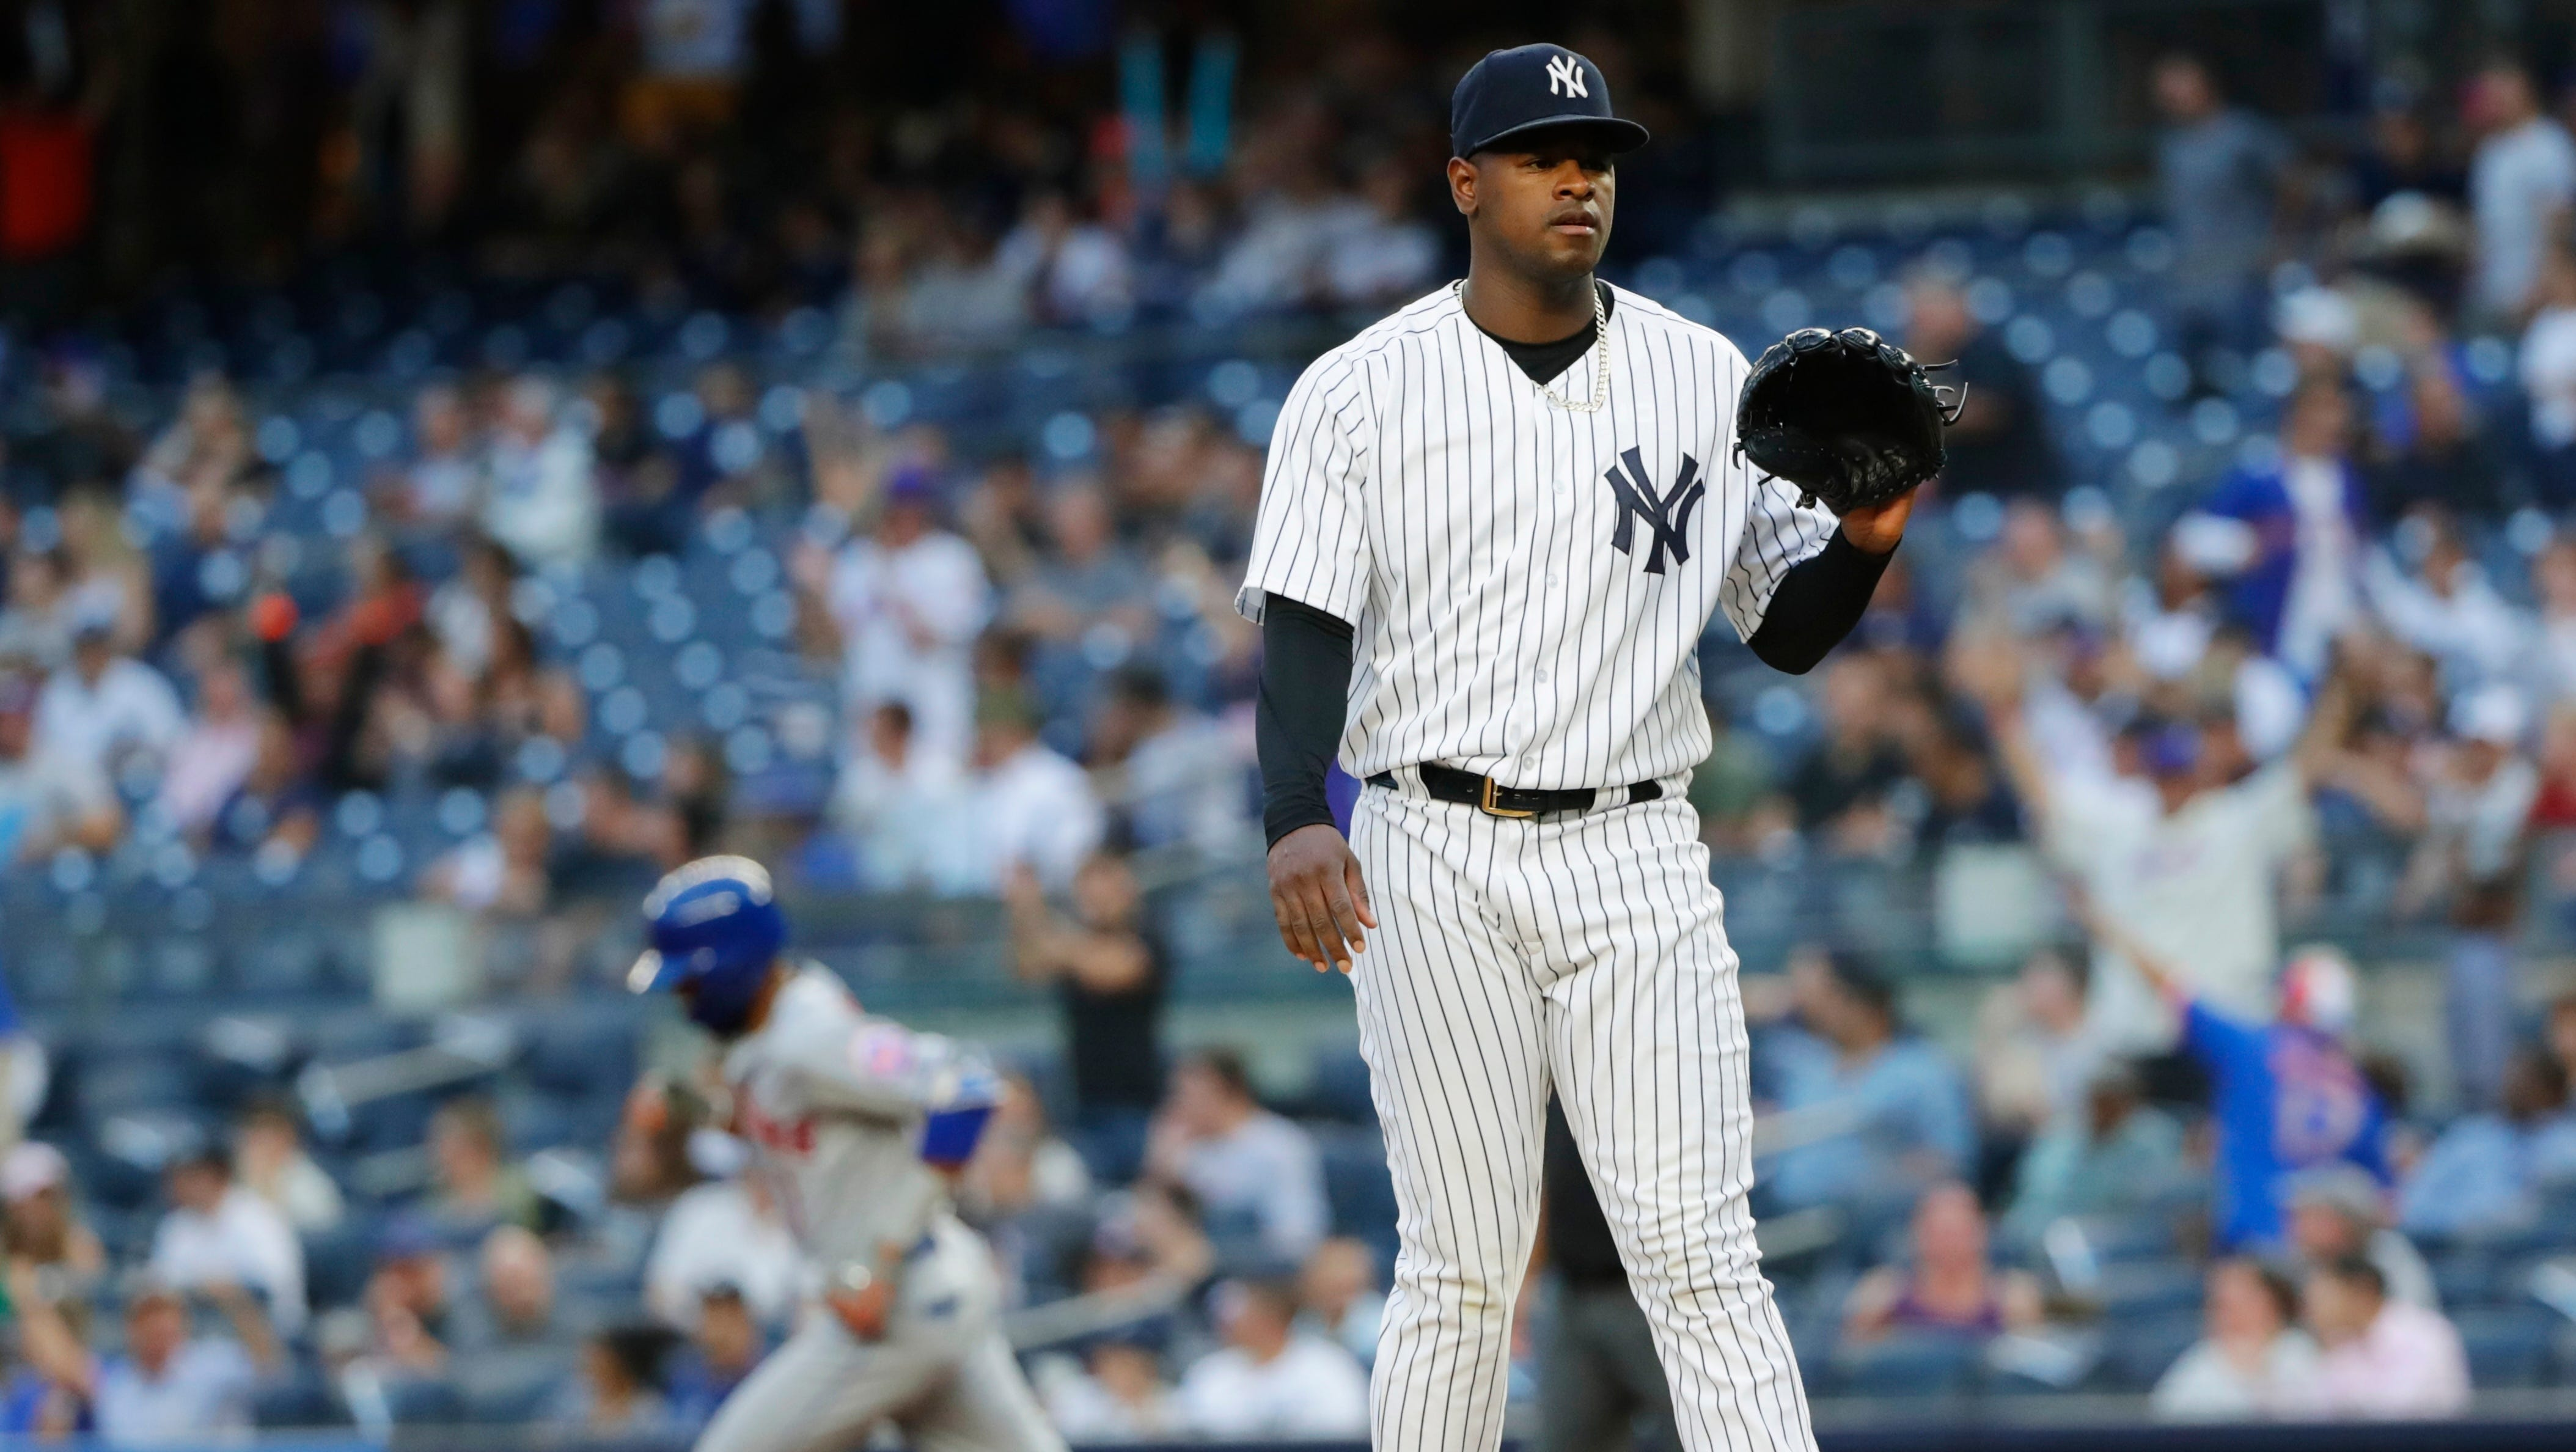 Luis Severino stumbles again as New York Yankees' ace goes 4 innings in loss to Mets